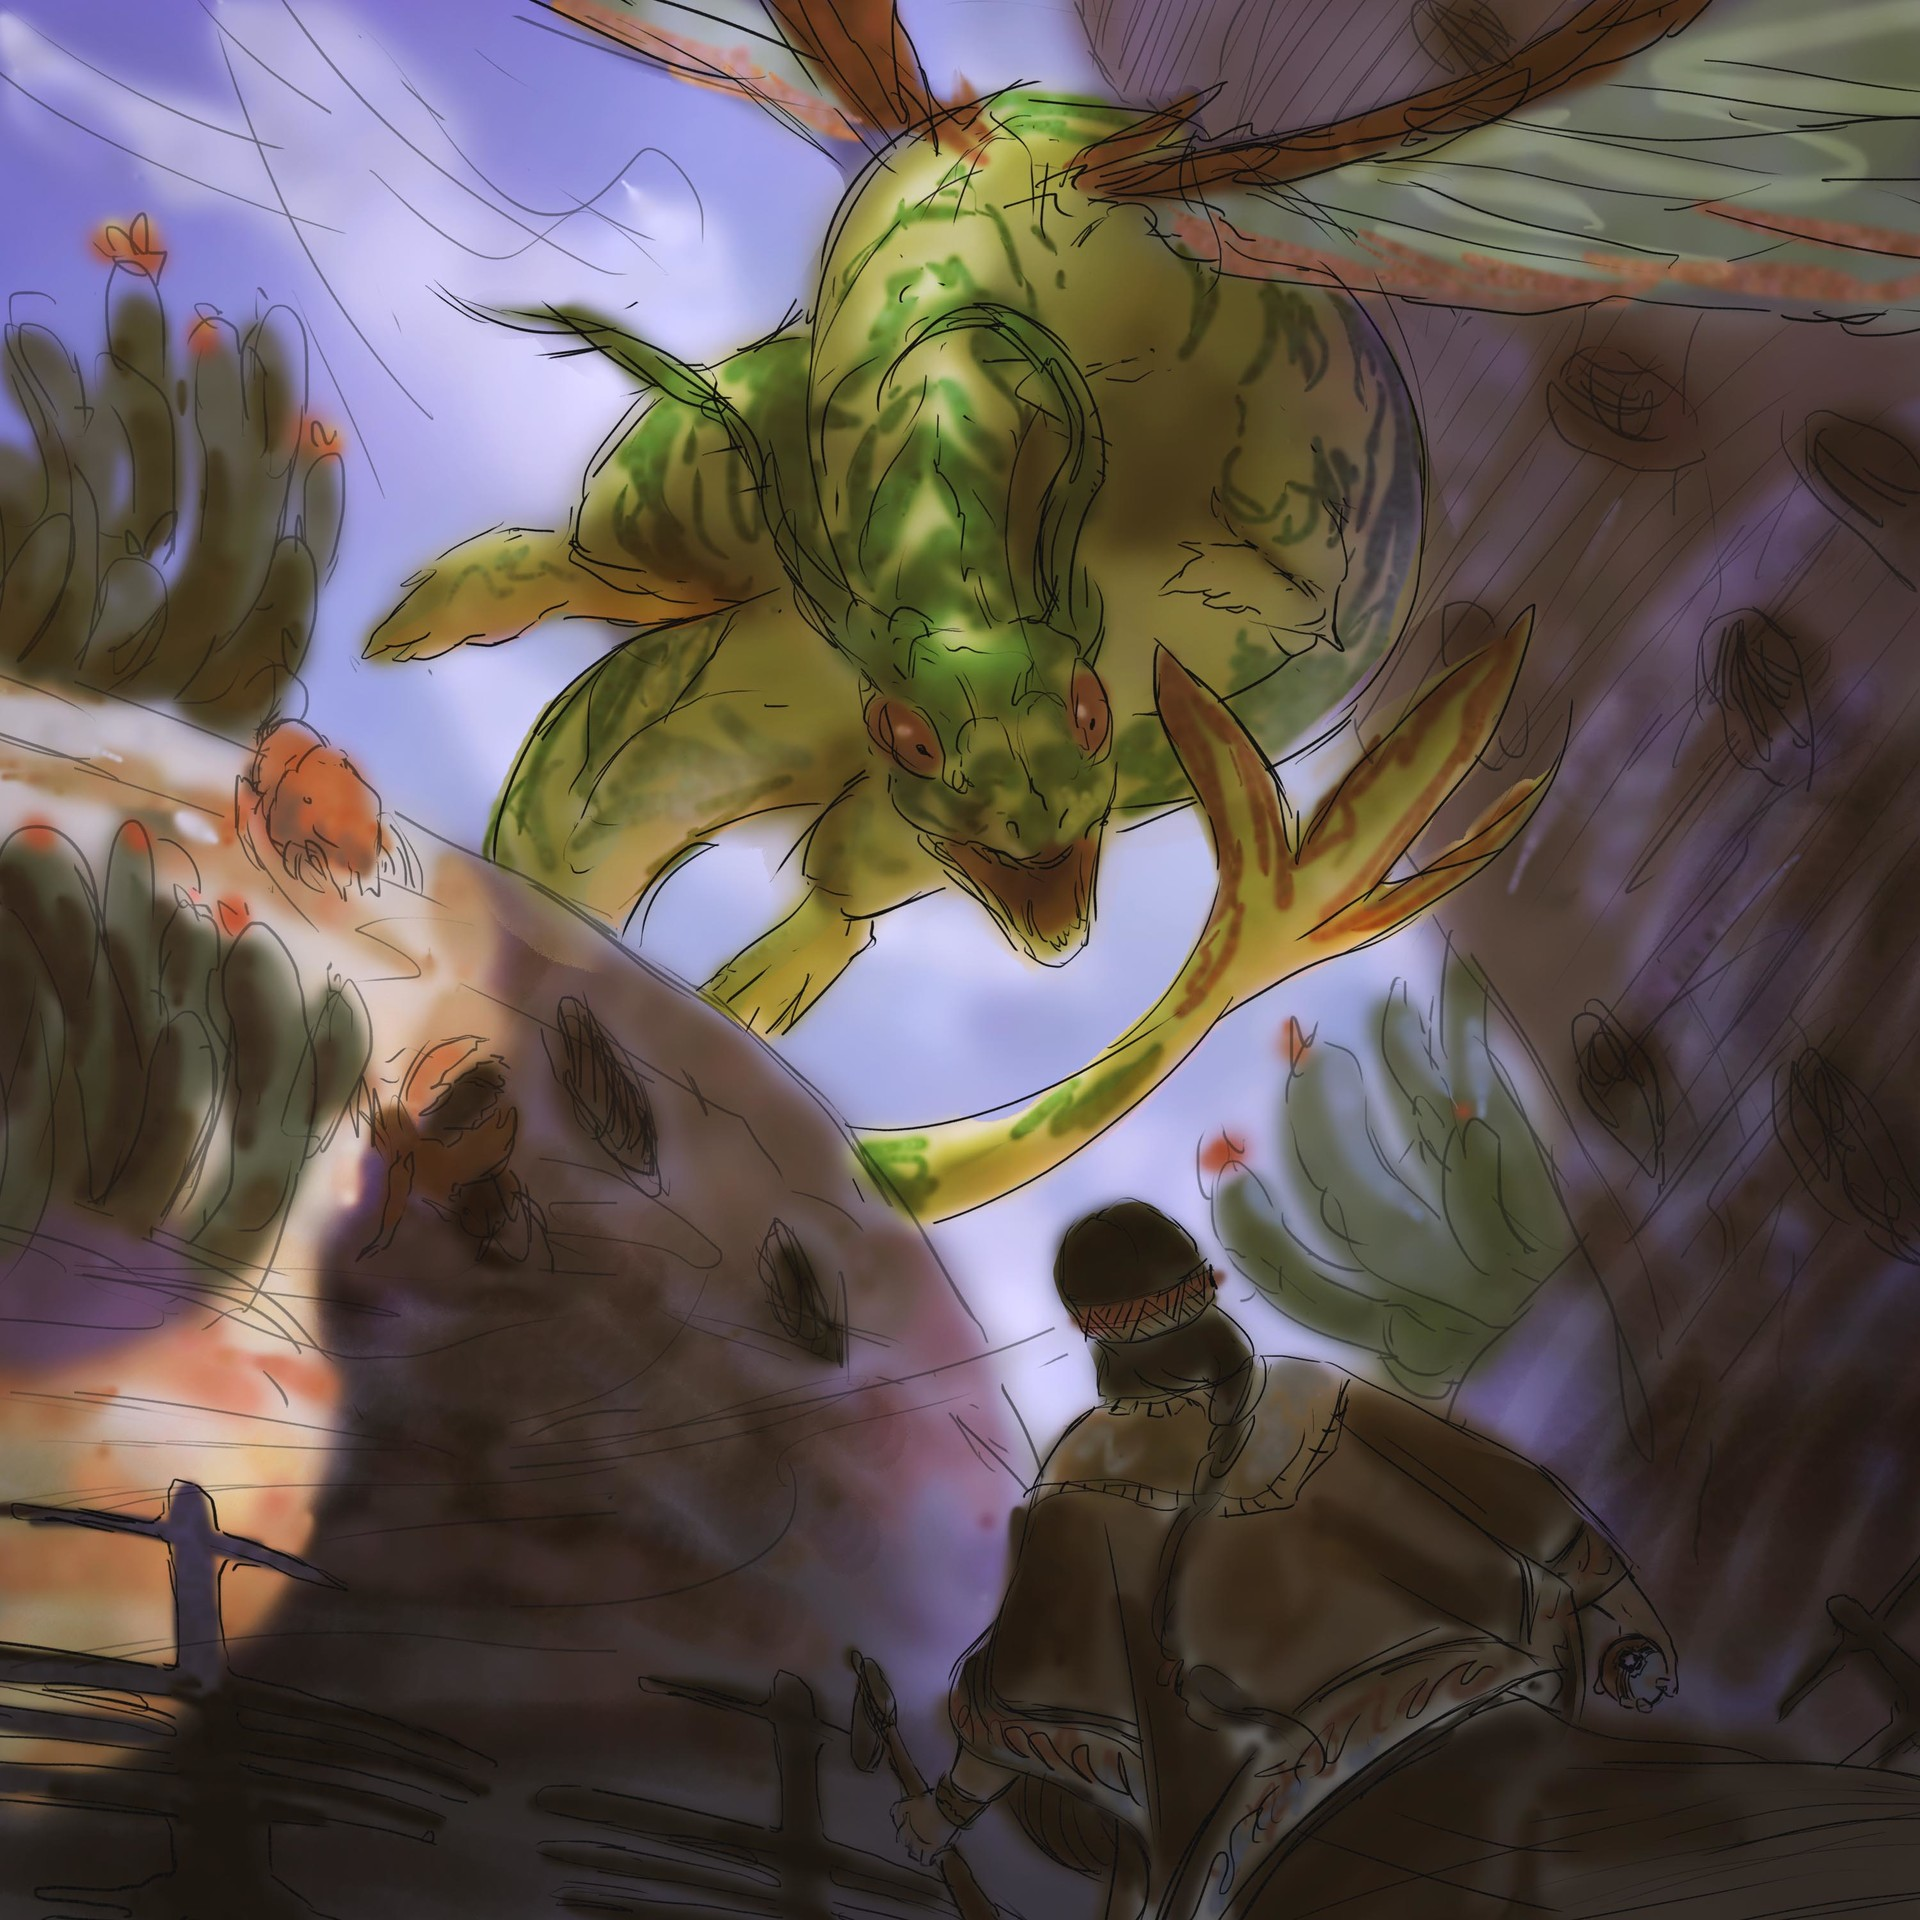 Sketch 4 - Flygon in its nest, being approached by a Diaguita-inspired warrior.